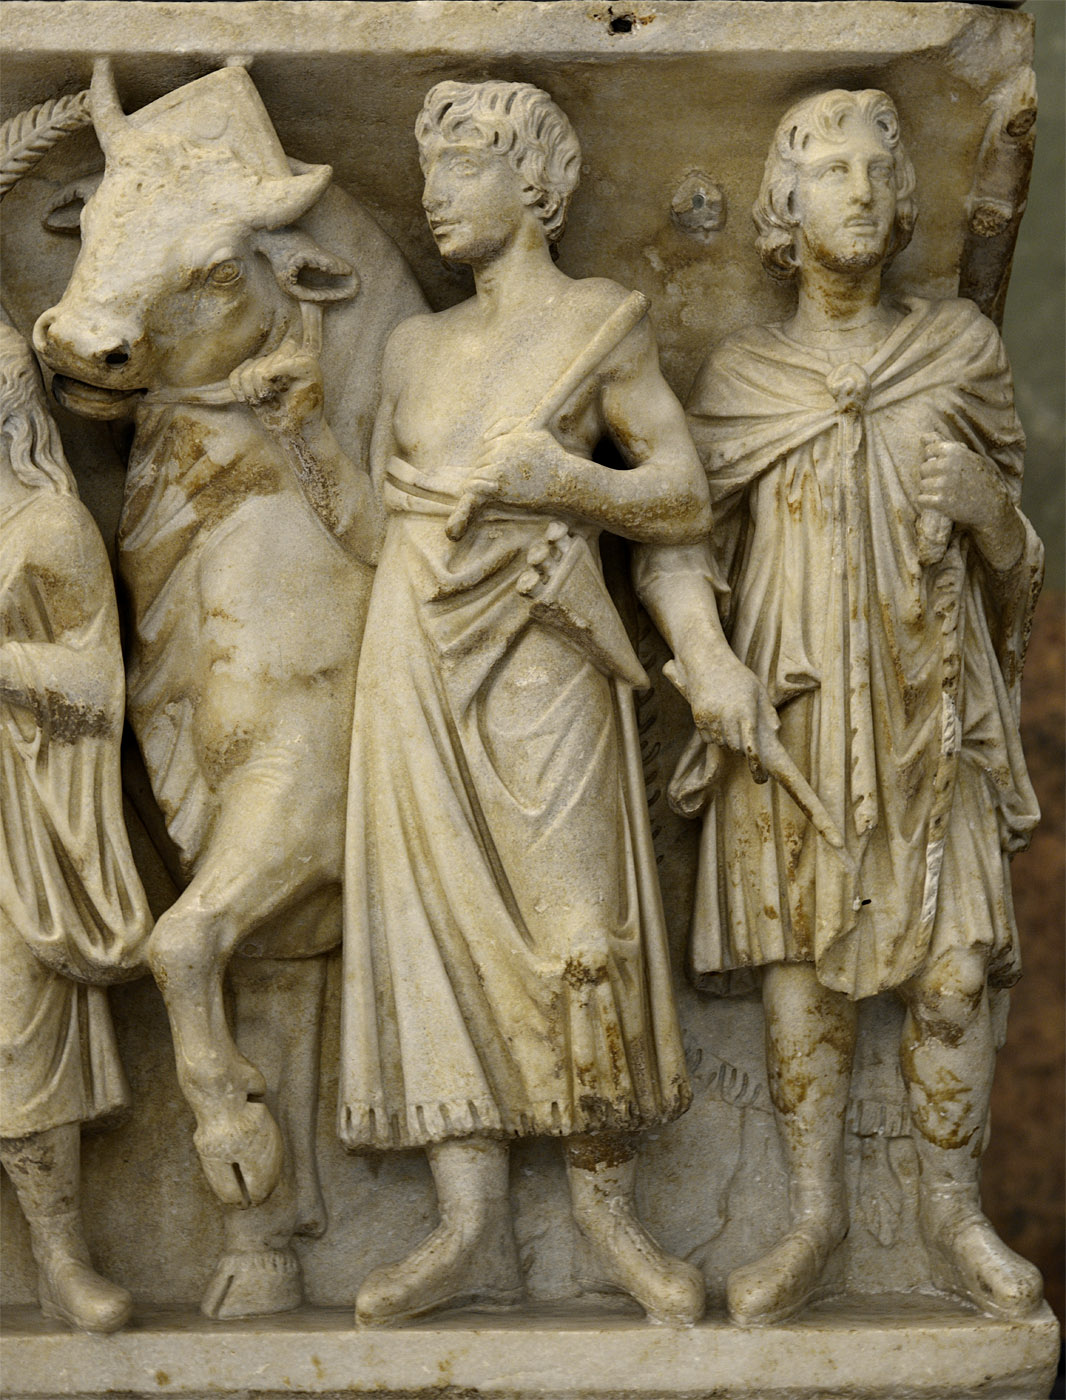 Sarcophagus with a matrimonial ceremony (so-called wedding or marriage sarcophagus) — a close-up of the front panel. Marble. 3rd cent. CE. Inv. No. A 433. Saint Petersburg, The State Hermitage Museum